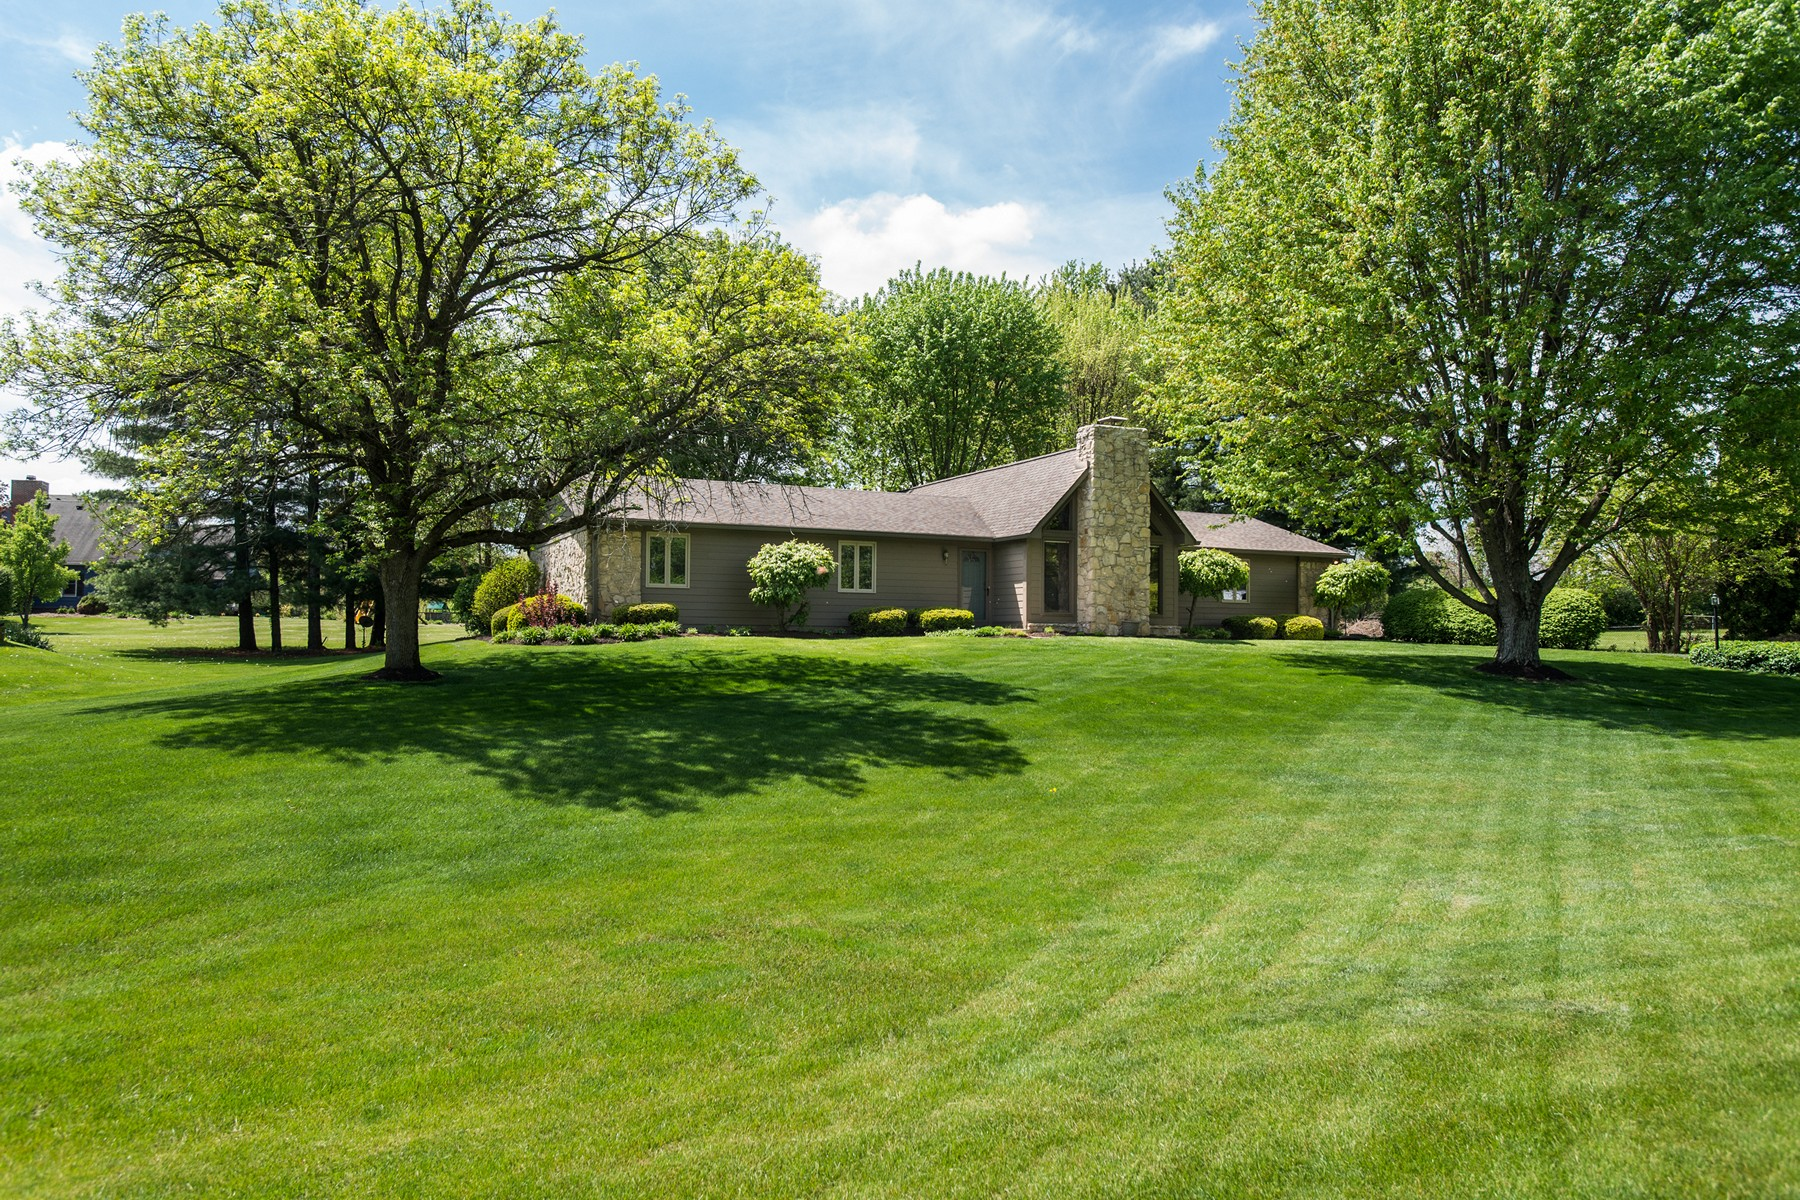 Single Family Home for Sale at Well Anointed Ranch Home in Park-Like Setting 407 Mill Farm Road Noblesville, Indiana 46062 United States